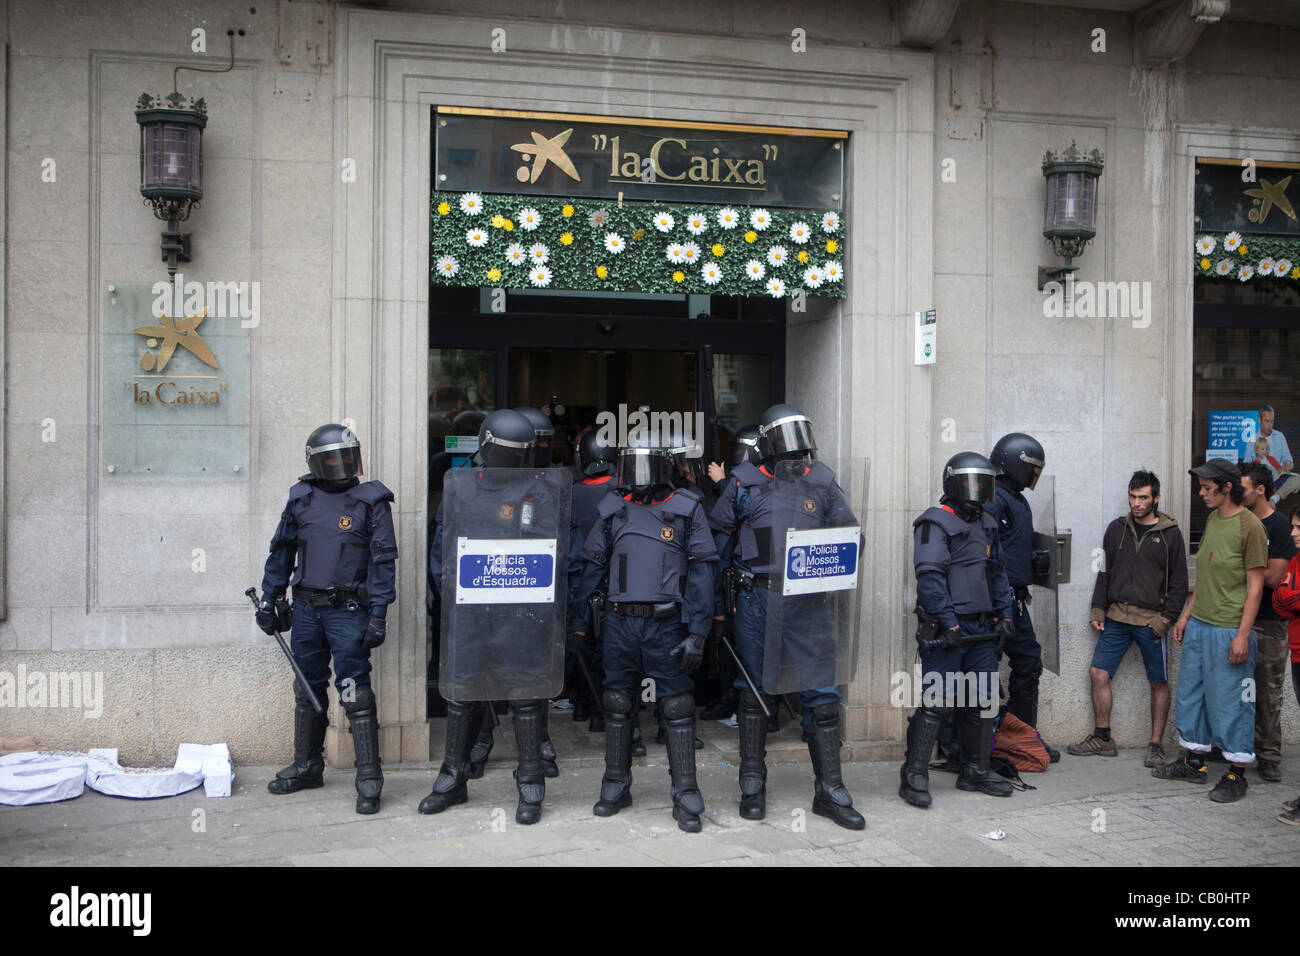 15M-anti-capitalist movement in Spain: Peaceful occupation of a branch of La Caixa bank in Spain Girona, young people - Stock Image